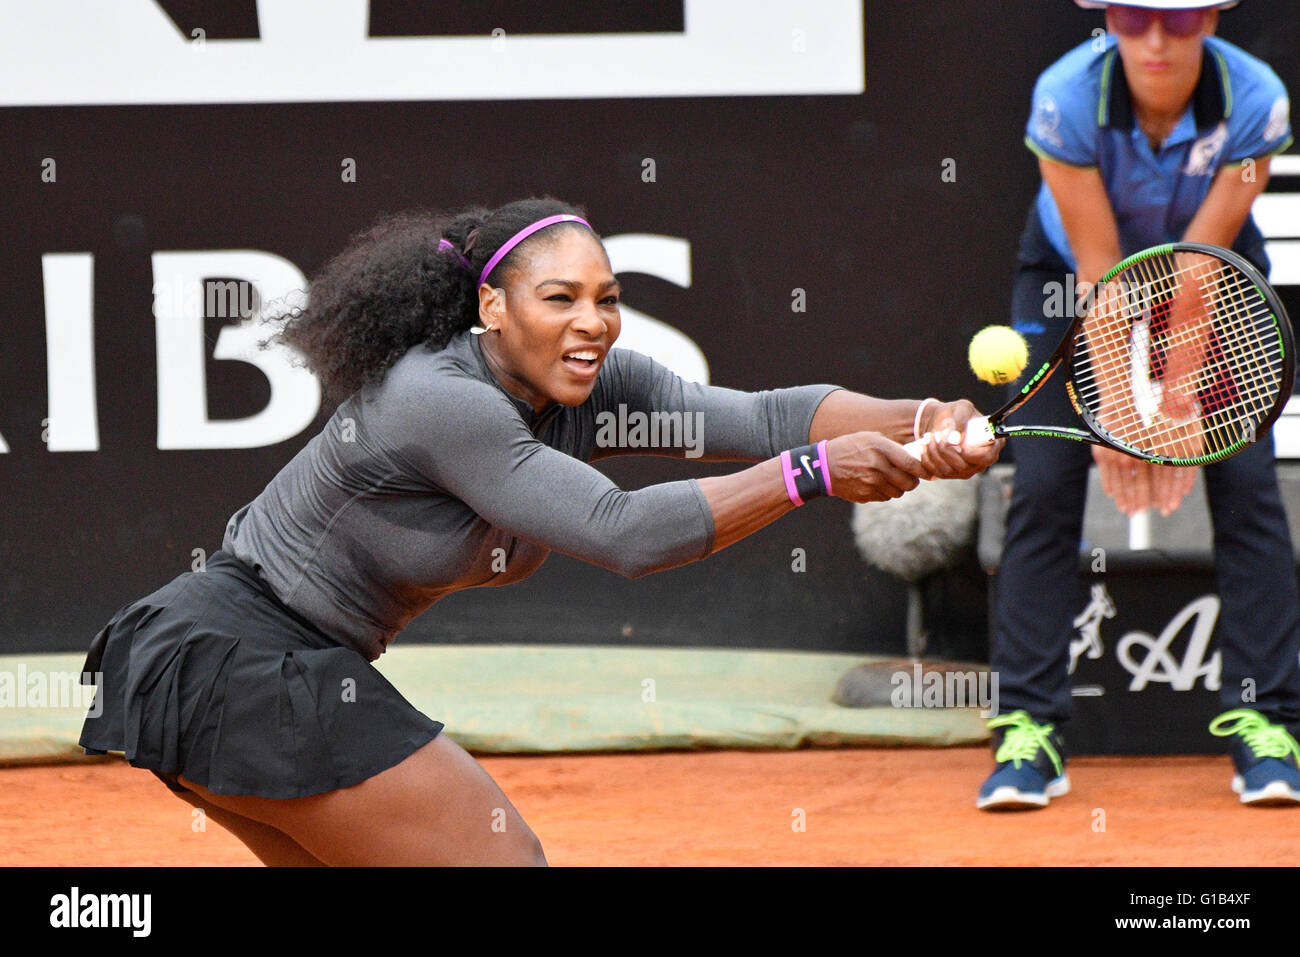 Rome, Italy. 12th May, 2016. Serena Williams of USA in action against Christiana Mchale of USA during  The Internazionali Stock Photo